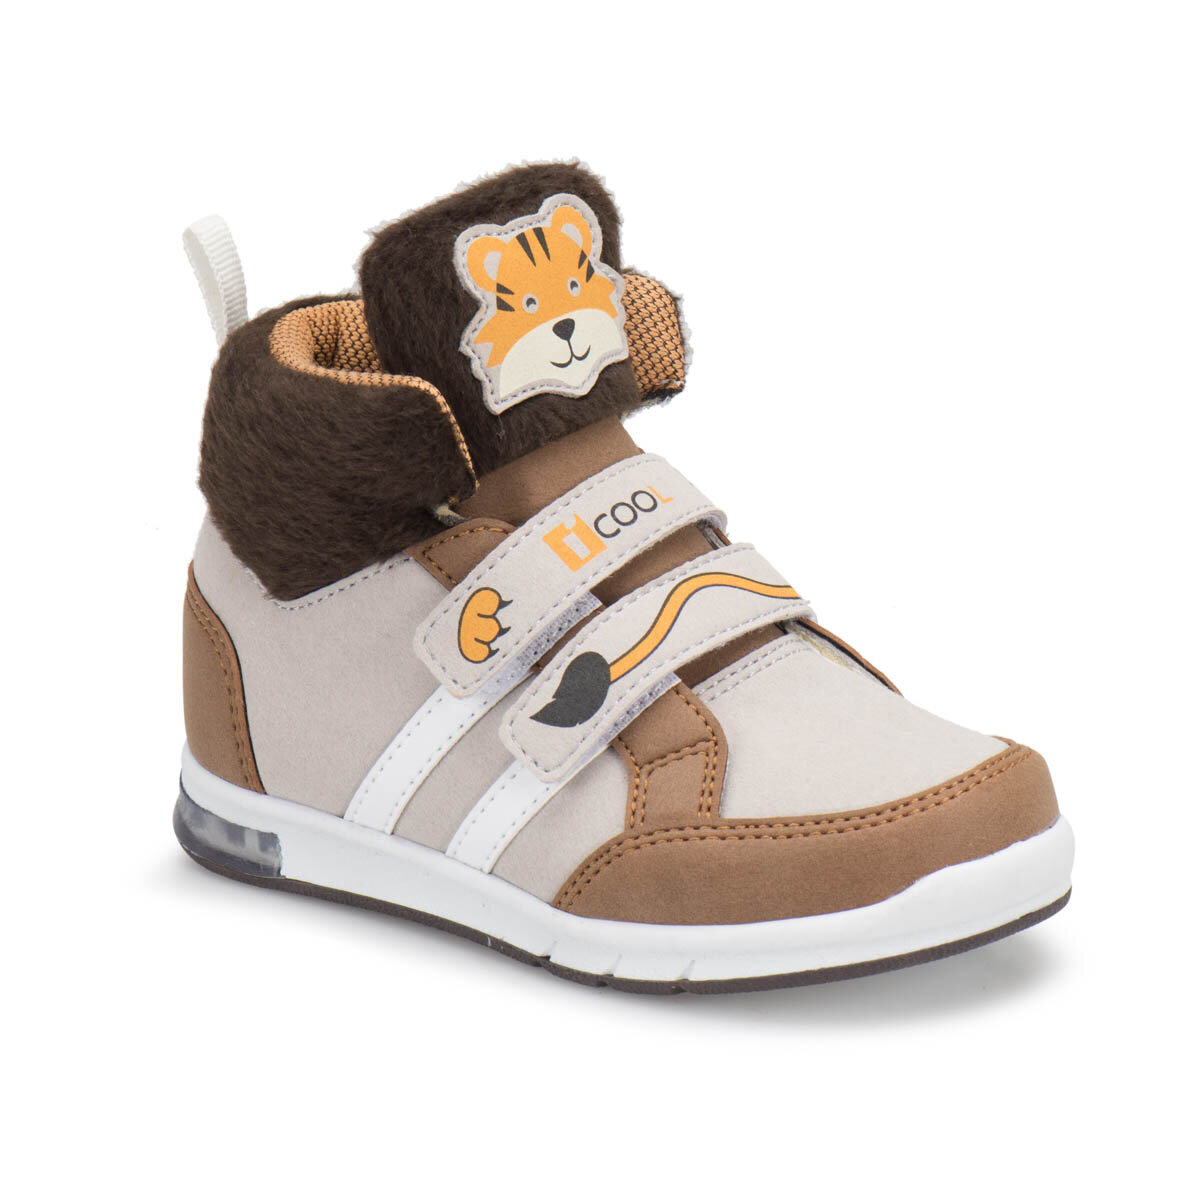 FLO KEDDY Brown Male Child Sneaker Shoes I-Cool